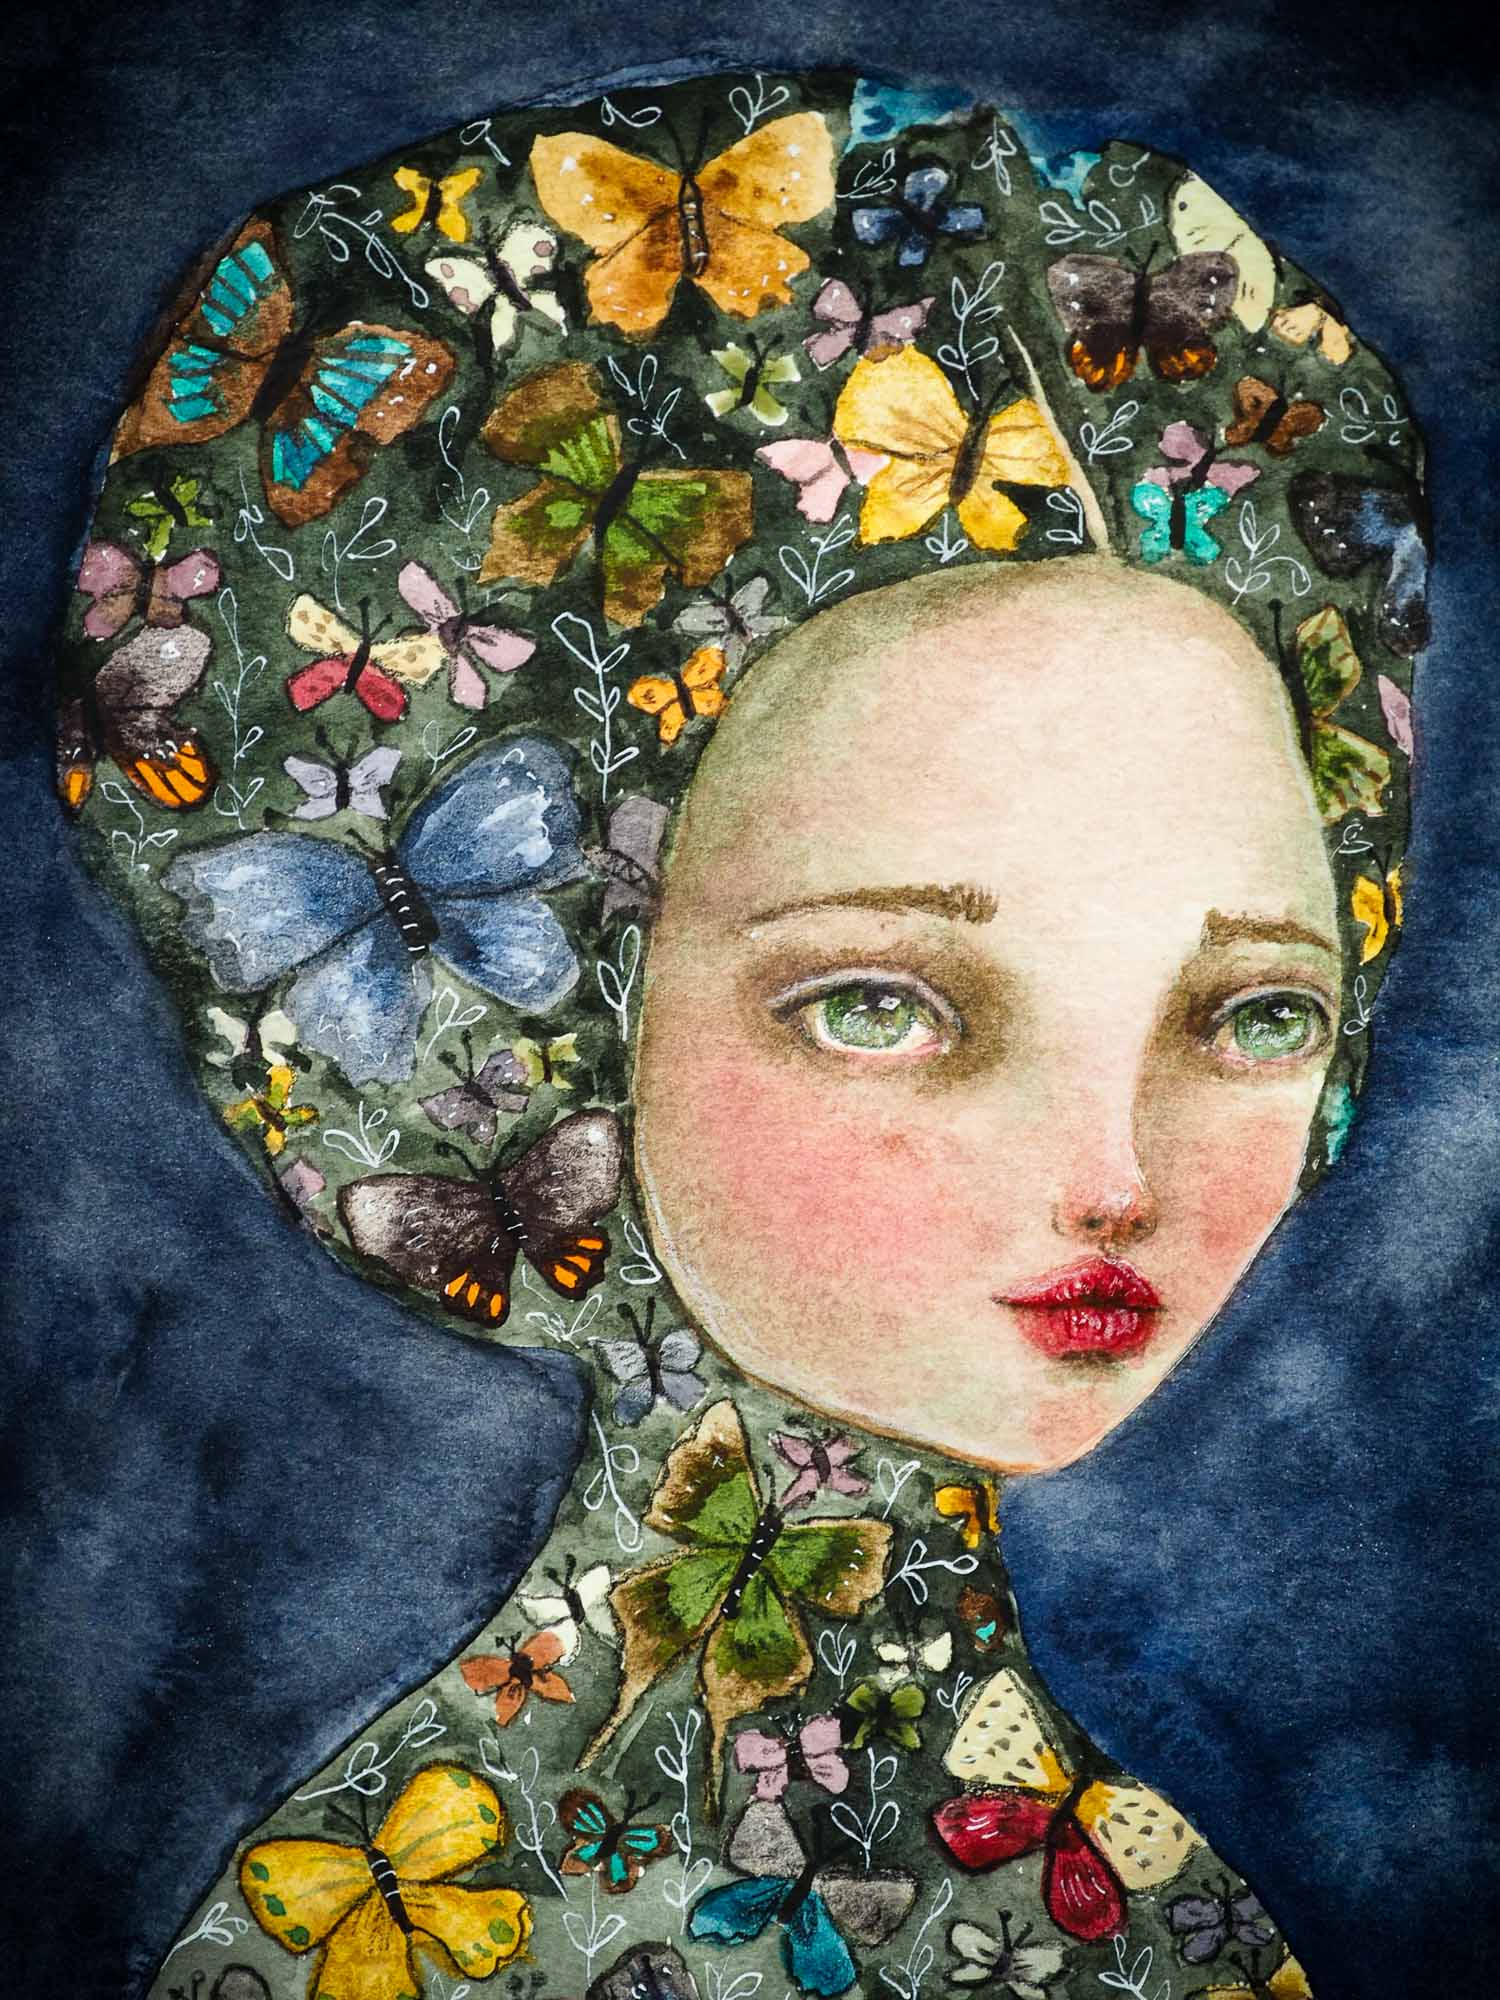 original watercolor covered woman illustration by Danita Art. Made on sturdy professional watercolor paper, it's a surreal image that will be the highlight of your Danita fine art collection.